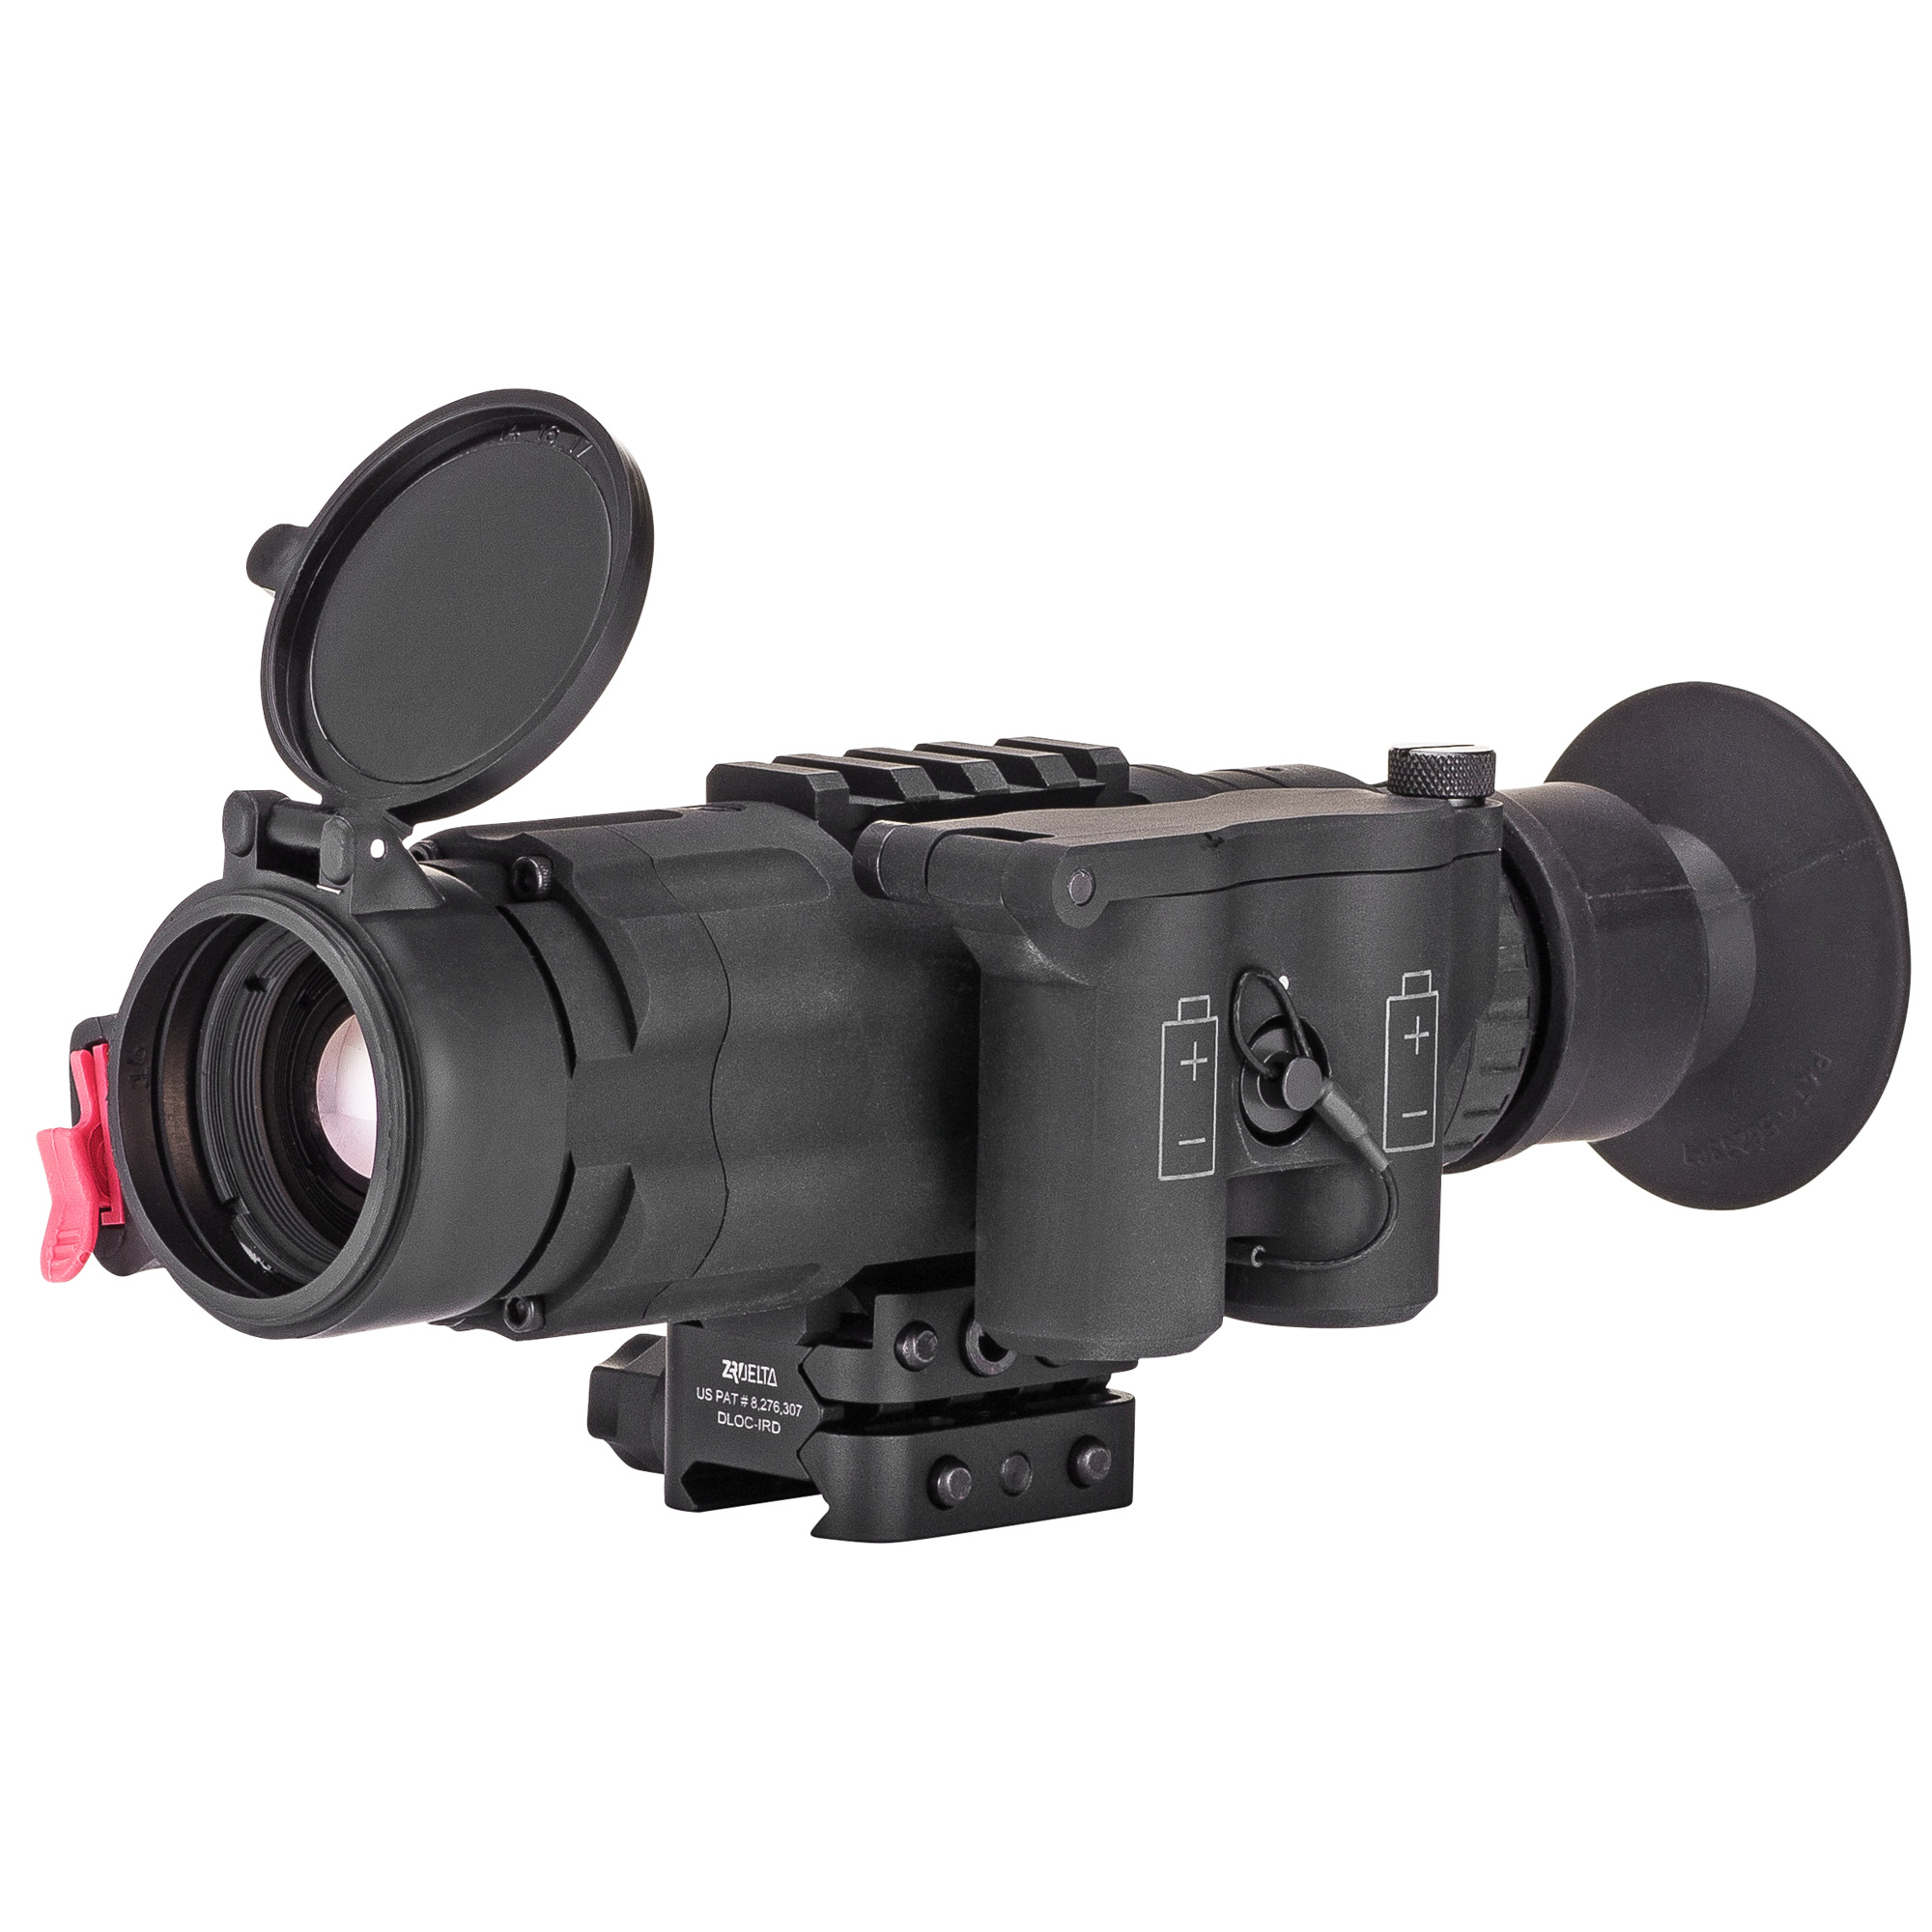 "The Trijicon REAP-IR(R) mini thermal riflescope is a small"" light"" powerful thermal riflescope that lets you engage targets in any light. It's trusted by the most demanding shooters and hunters who require speed and accuracy for night-time use. Choose from multiple magnification levels and field of view to fit your specific needs."